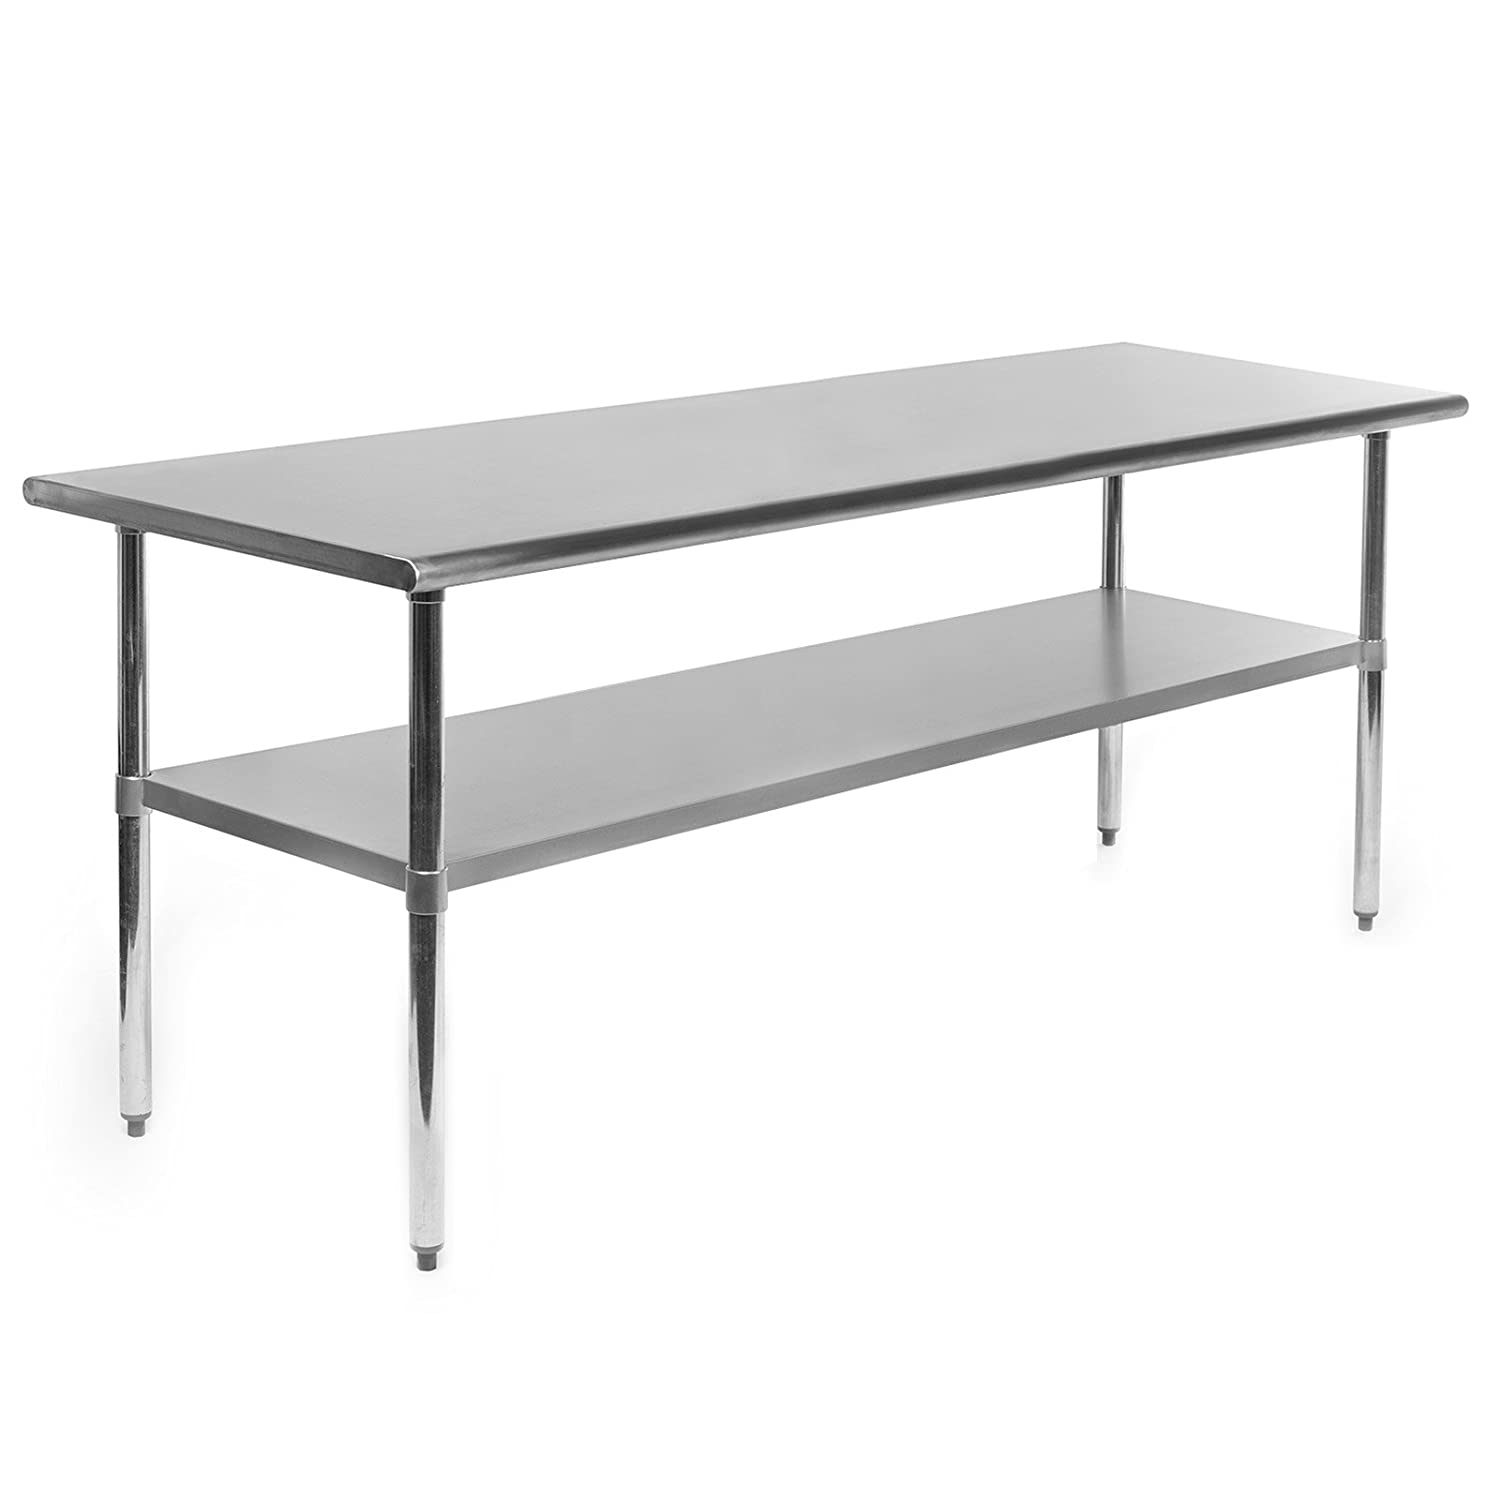 Amazoncom Gridmann NSF Stainless Steel Commercial Kitchen Prep - Stainless steel work table with wheels